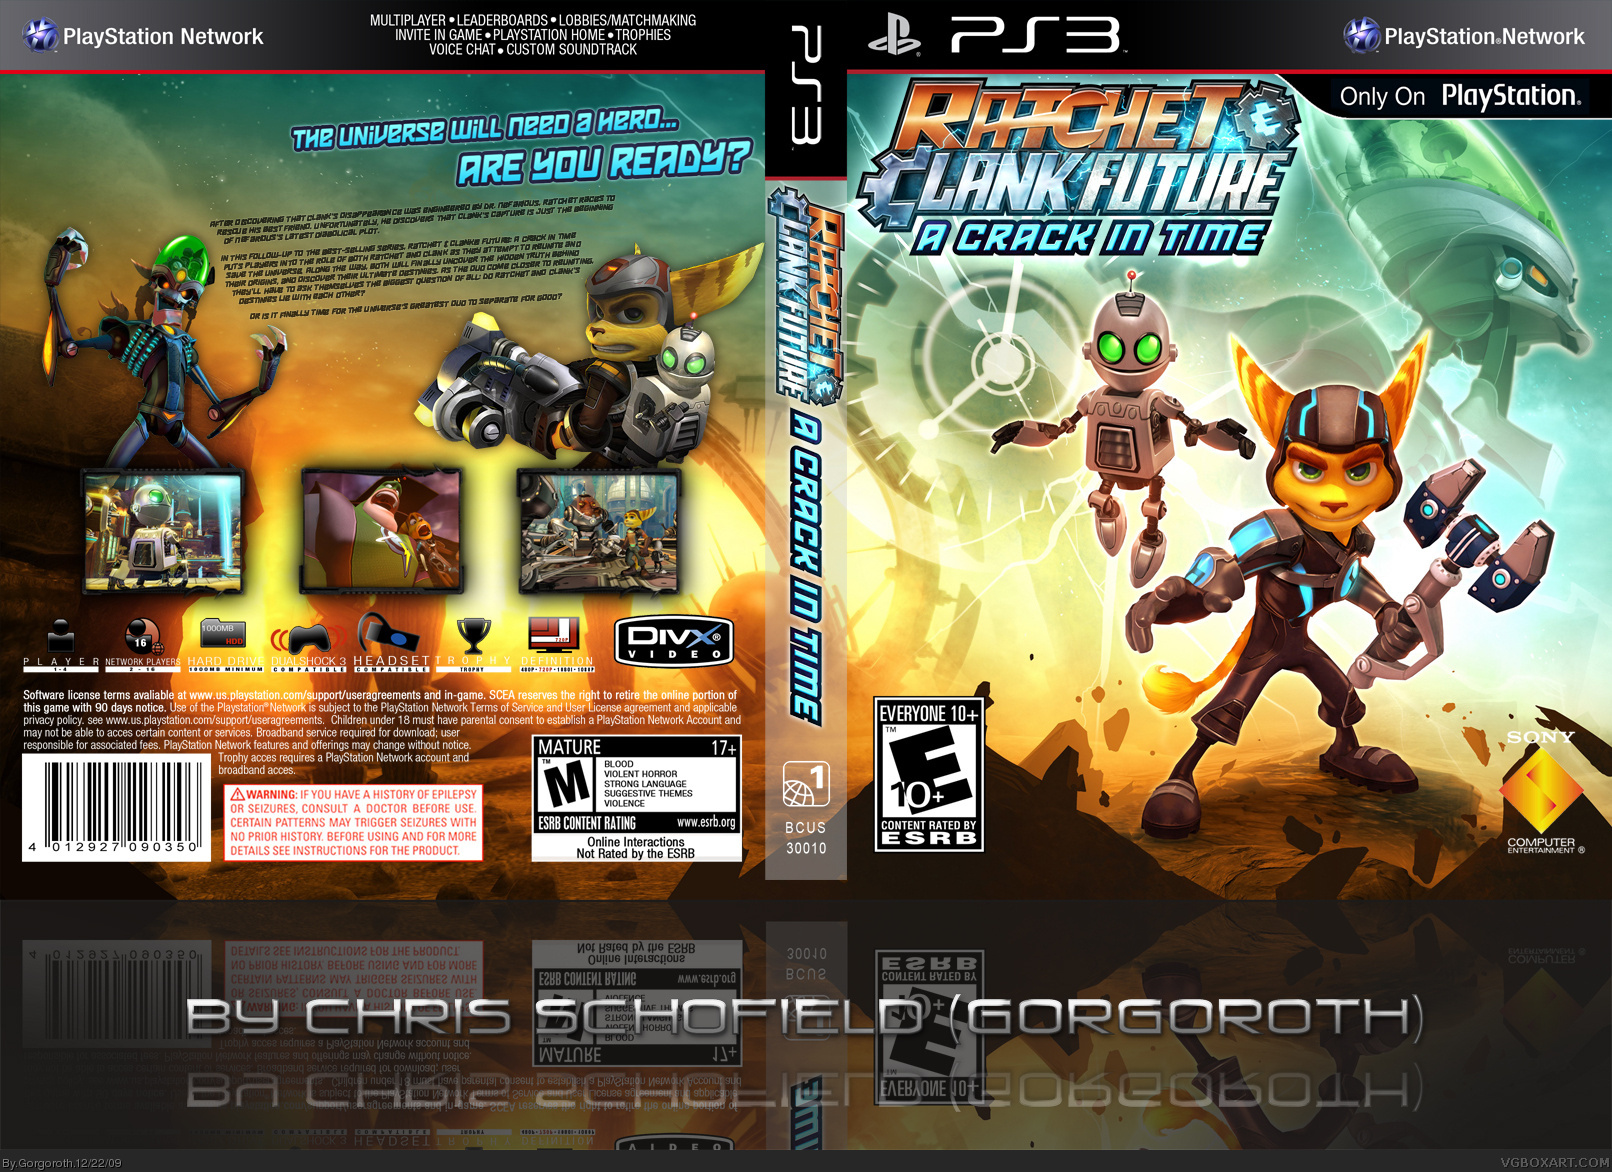 Ratchet and Clank Future: A Crack In Time Xbox 360 Box Art